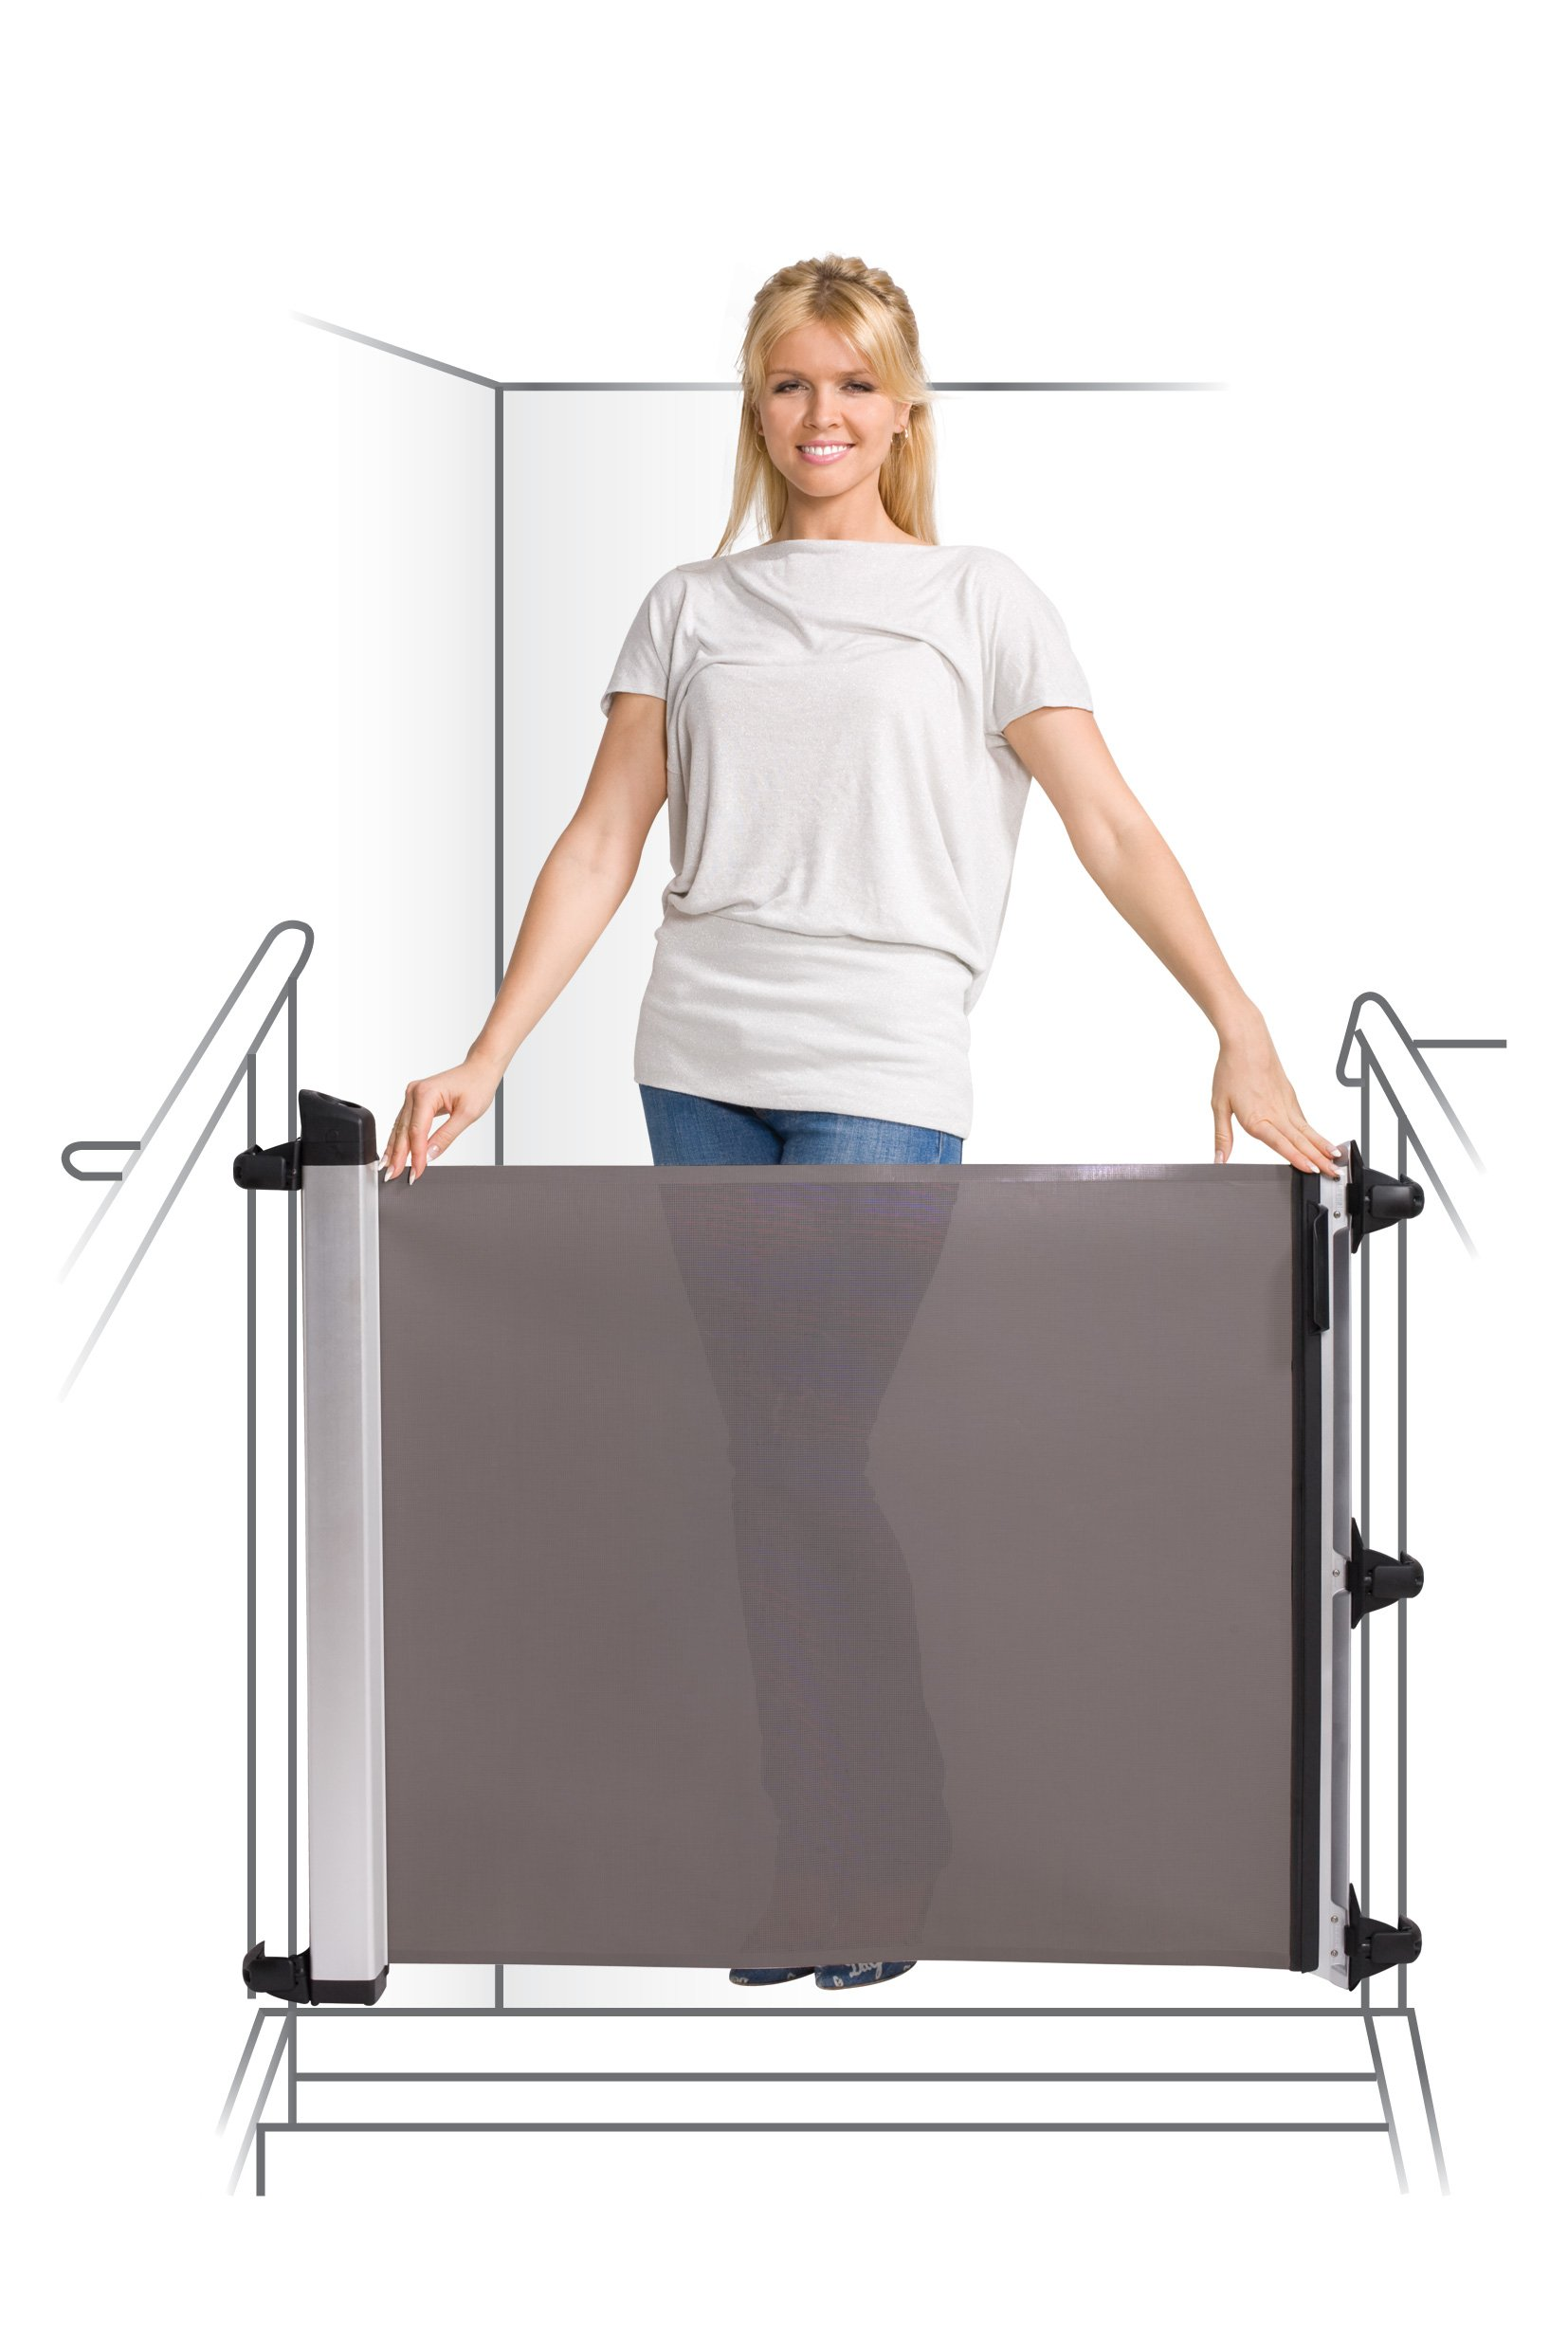 Lascal KiddyGuard Avant Baby Safety Gate Black Lascal Safety Gate discètes on easy to use one handed The curtain can extends to protect any space up to 120cm wide and 80cm height Designed to withstand an impact of 100kg 7